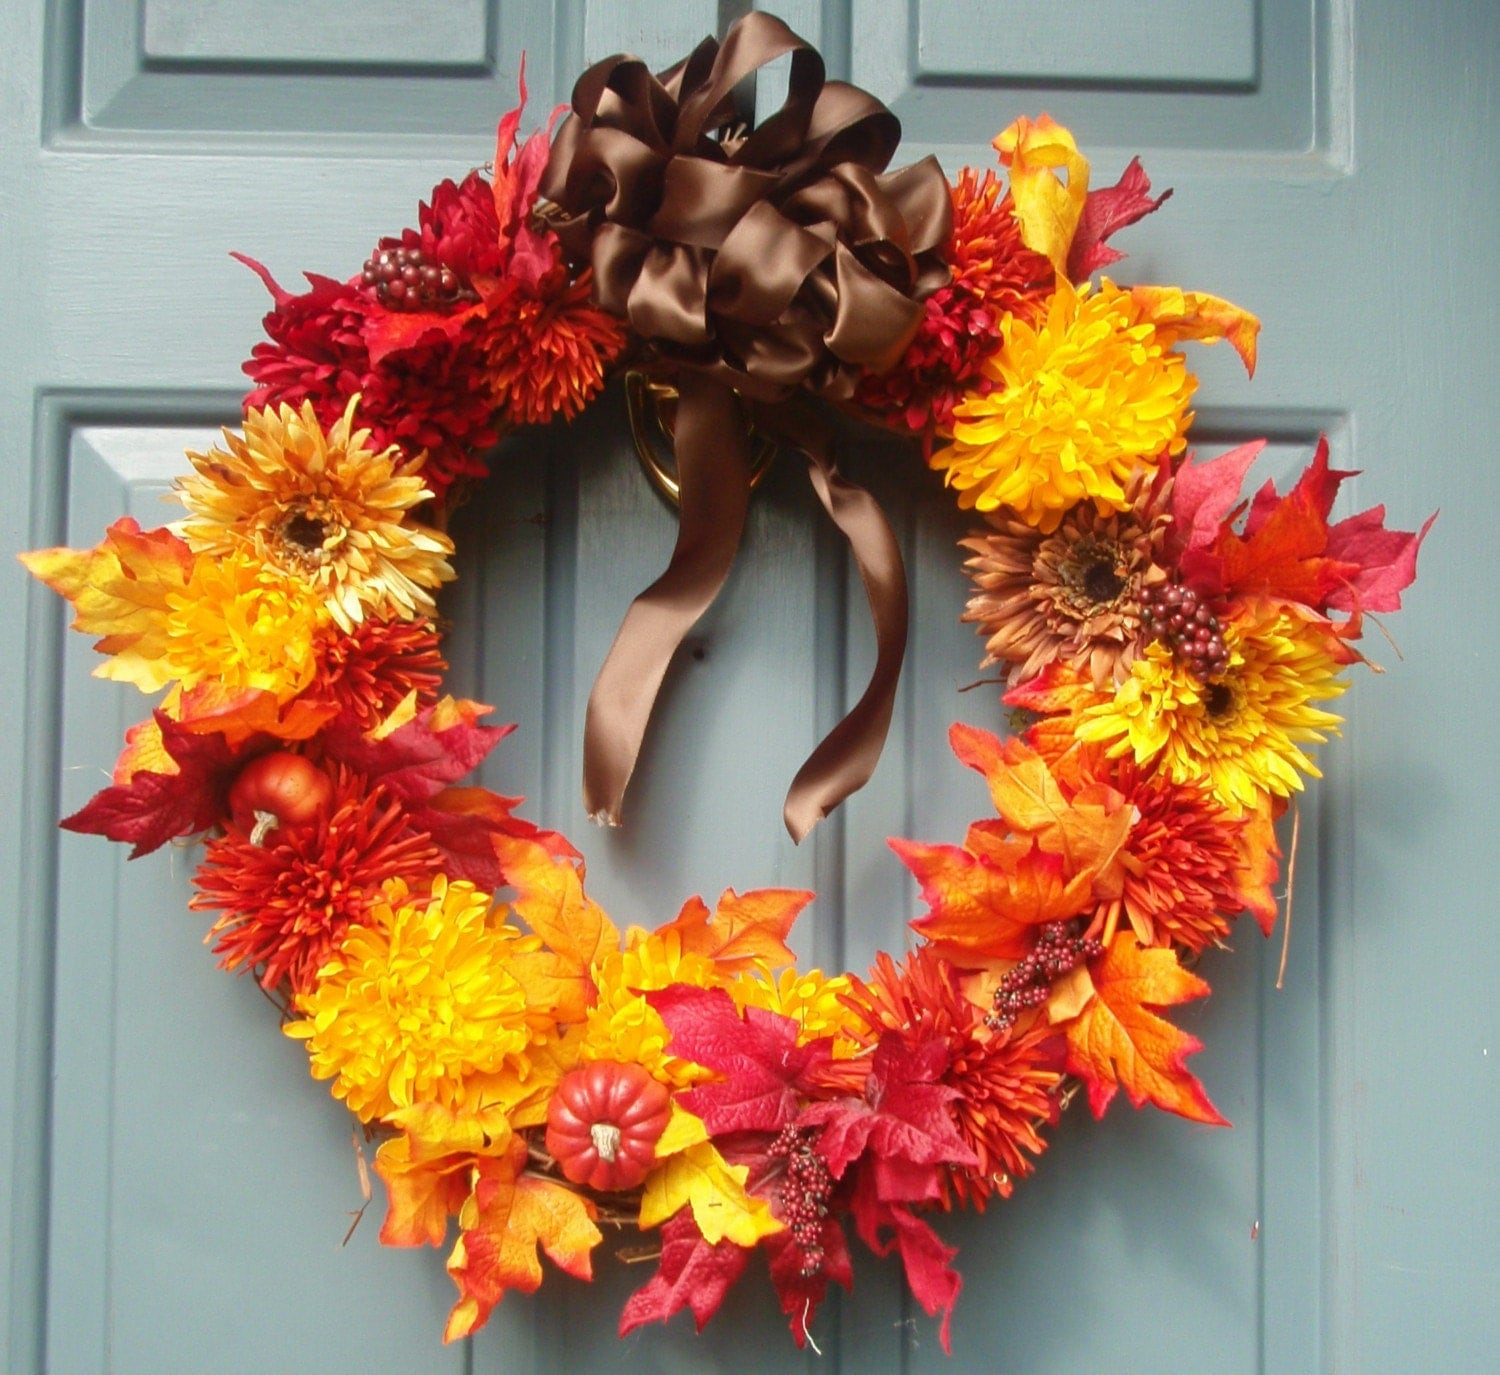 Autumn fall door wreath on sale Fall autumn door wreaths